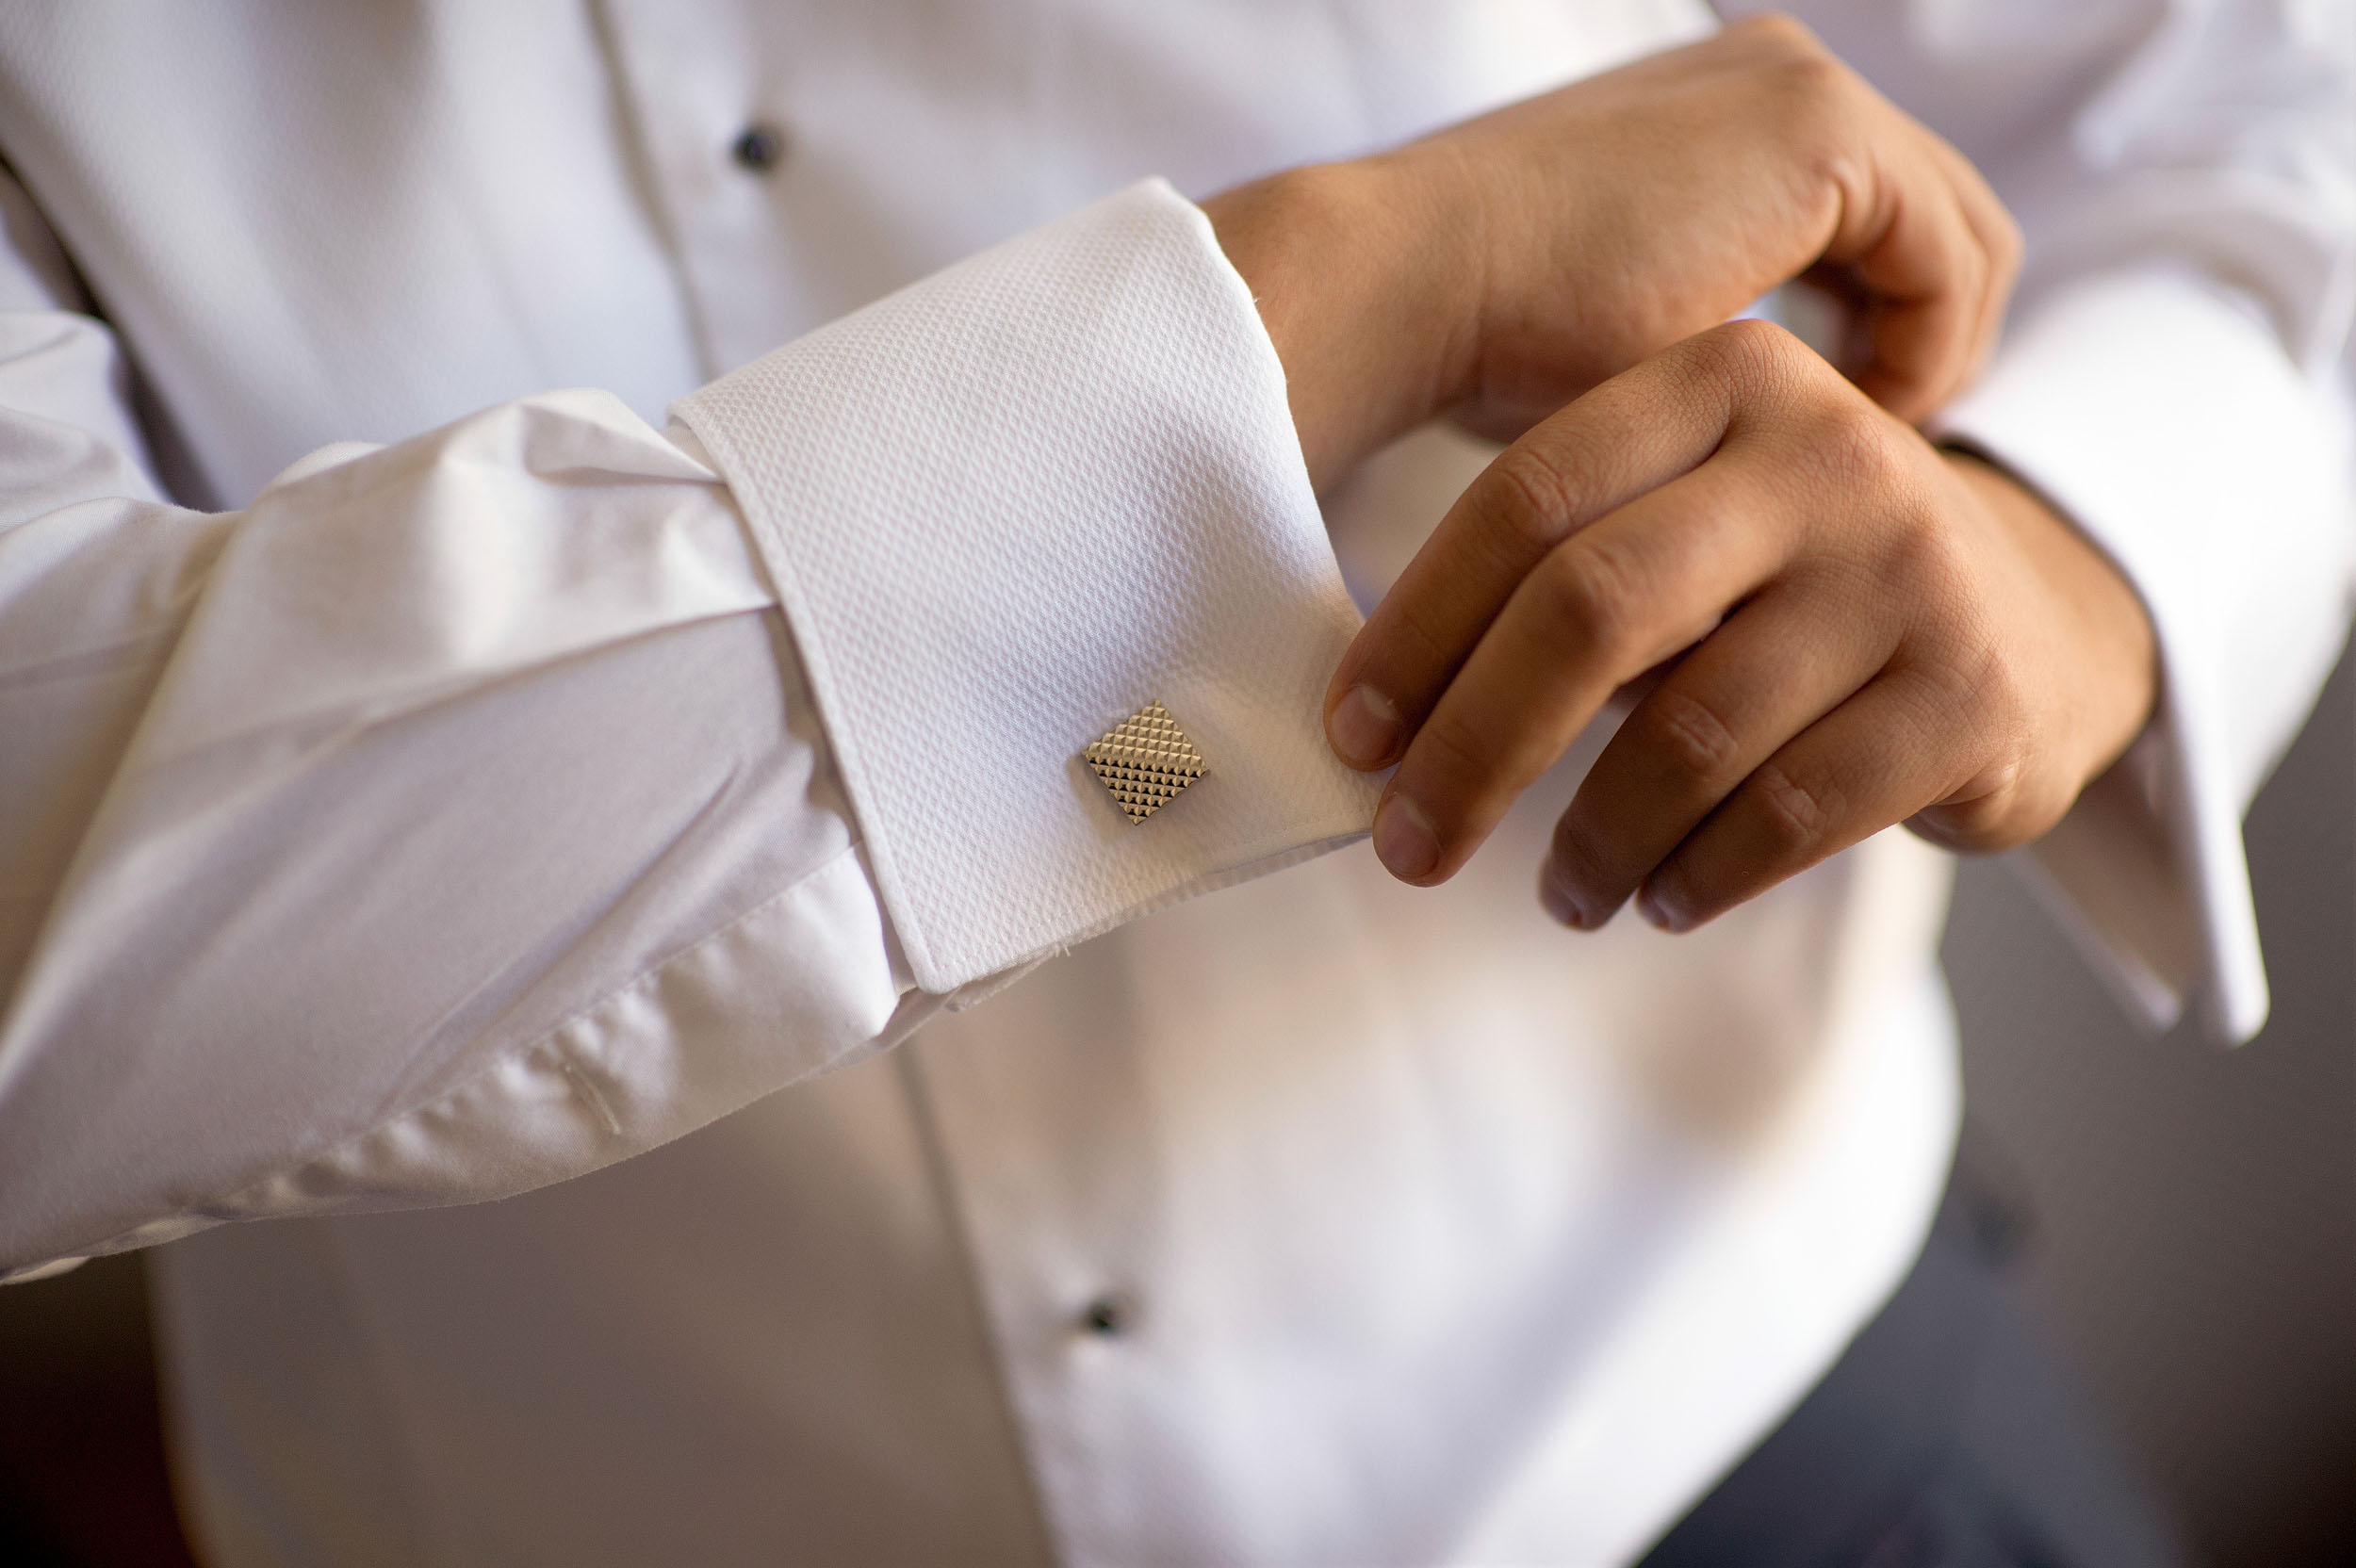 Groom putting on cufflinks while getting ready for wedding.